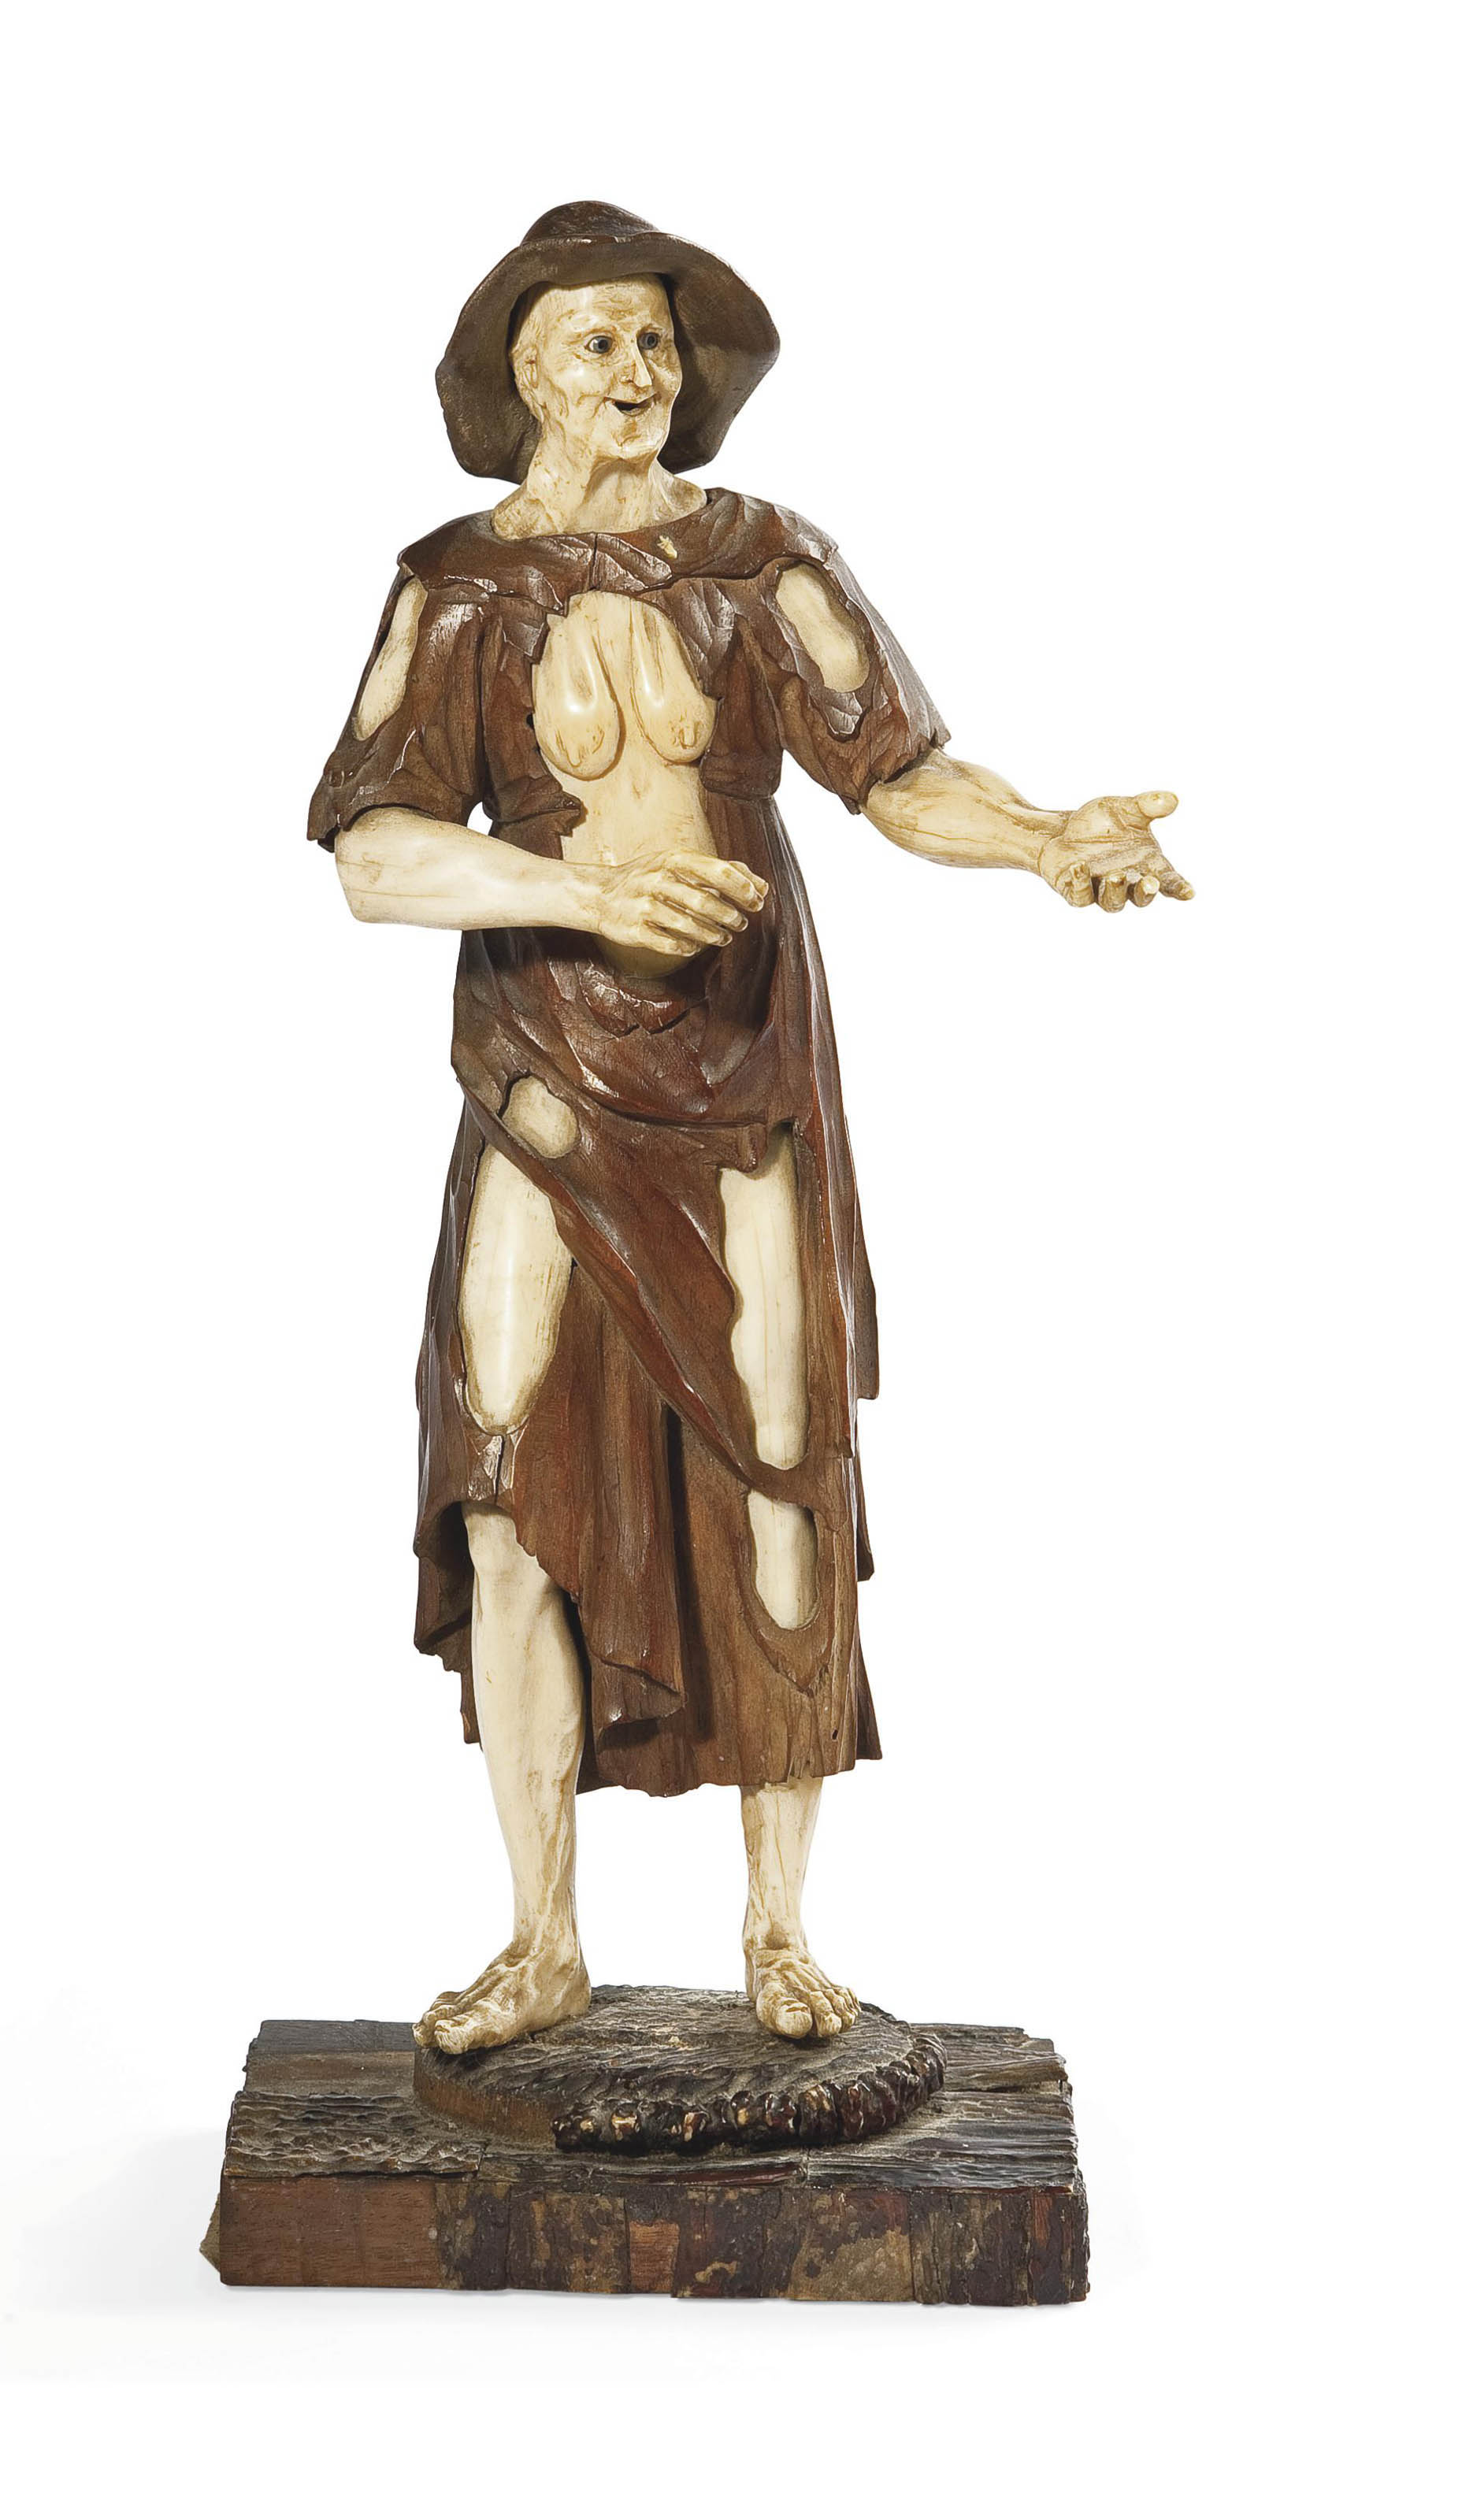 AN AUSTRIAN WALNUT AND IVORY FIGURE OF A PEASANT